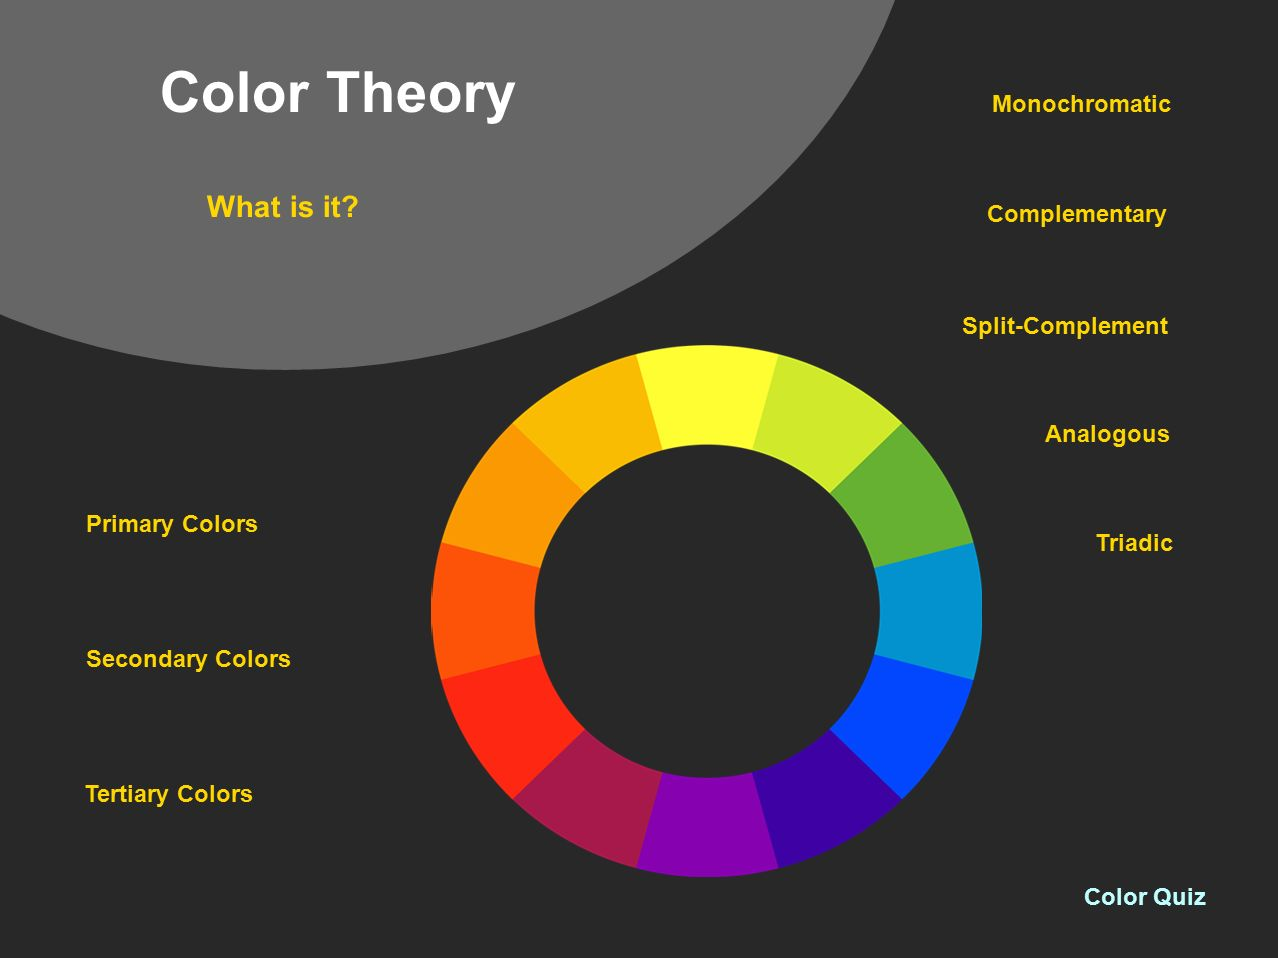 Color Theory What Is It Primary Colors Secondary Colors Tertiary Colors Monochromatic Complementary Split Complement Analogous Triadic Color Quiz Ppt Download